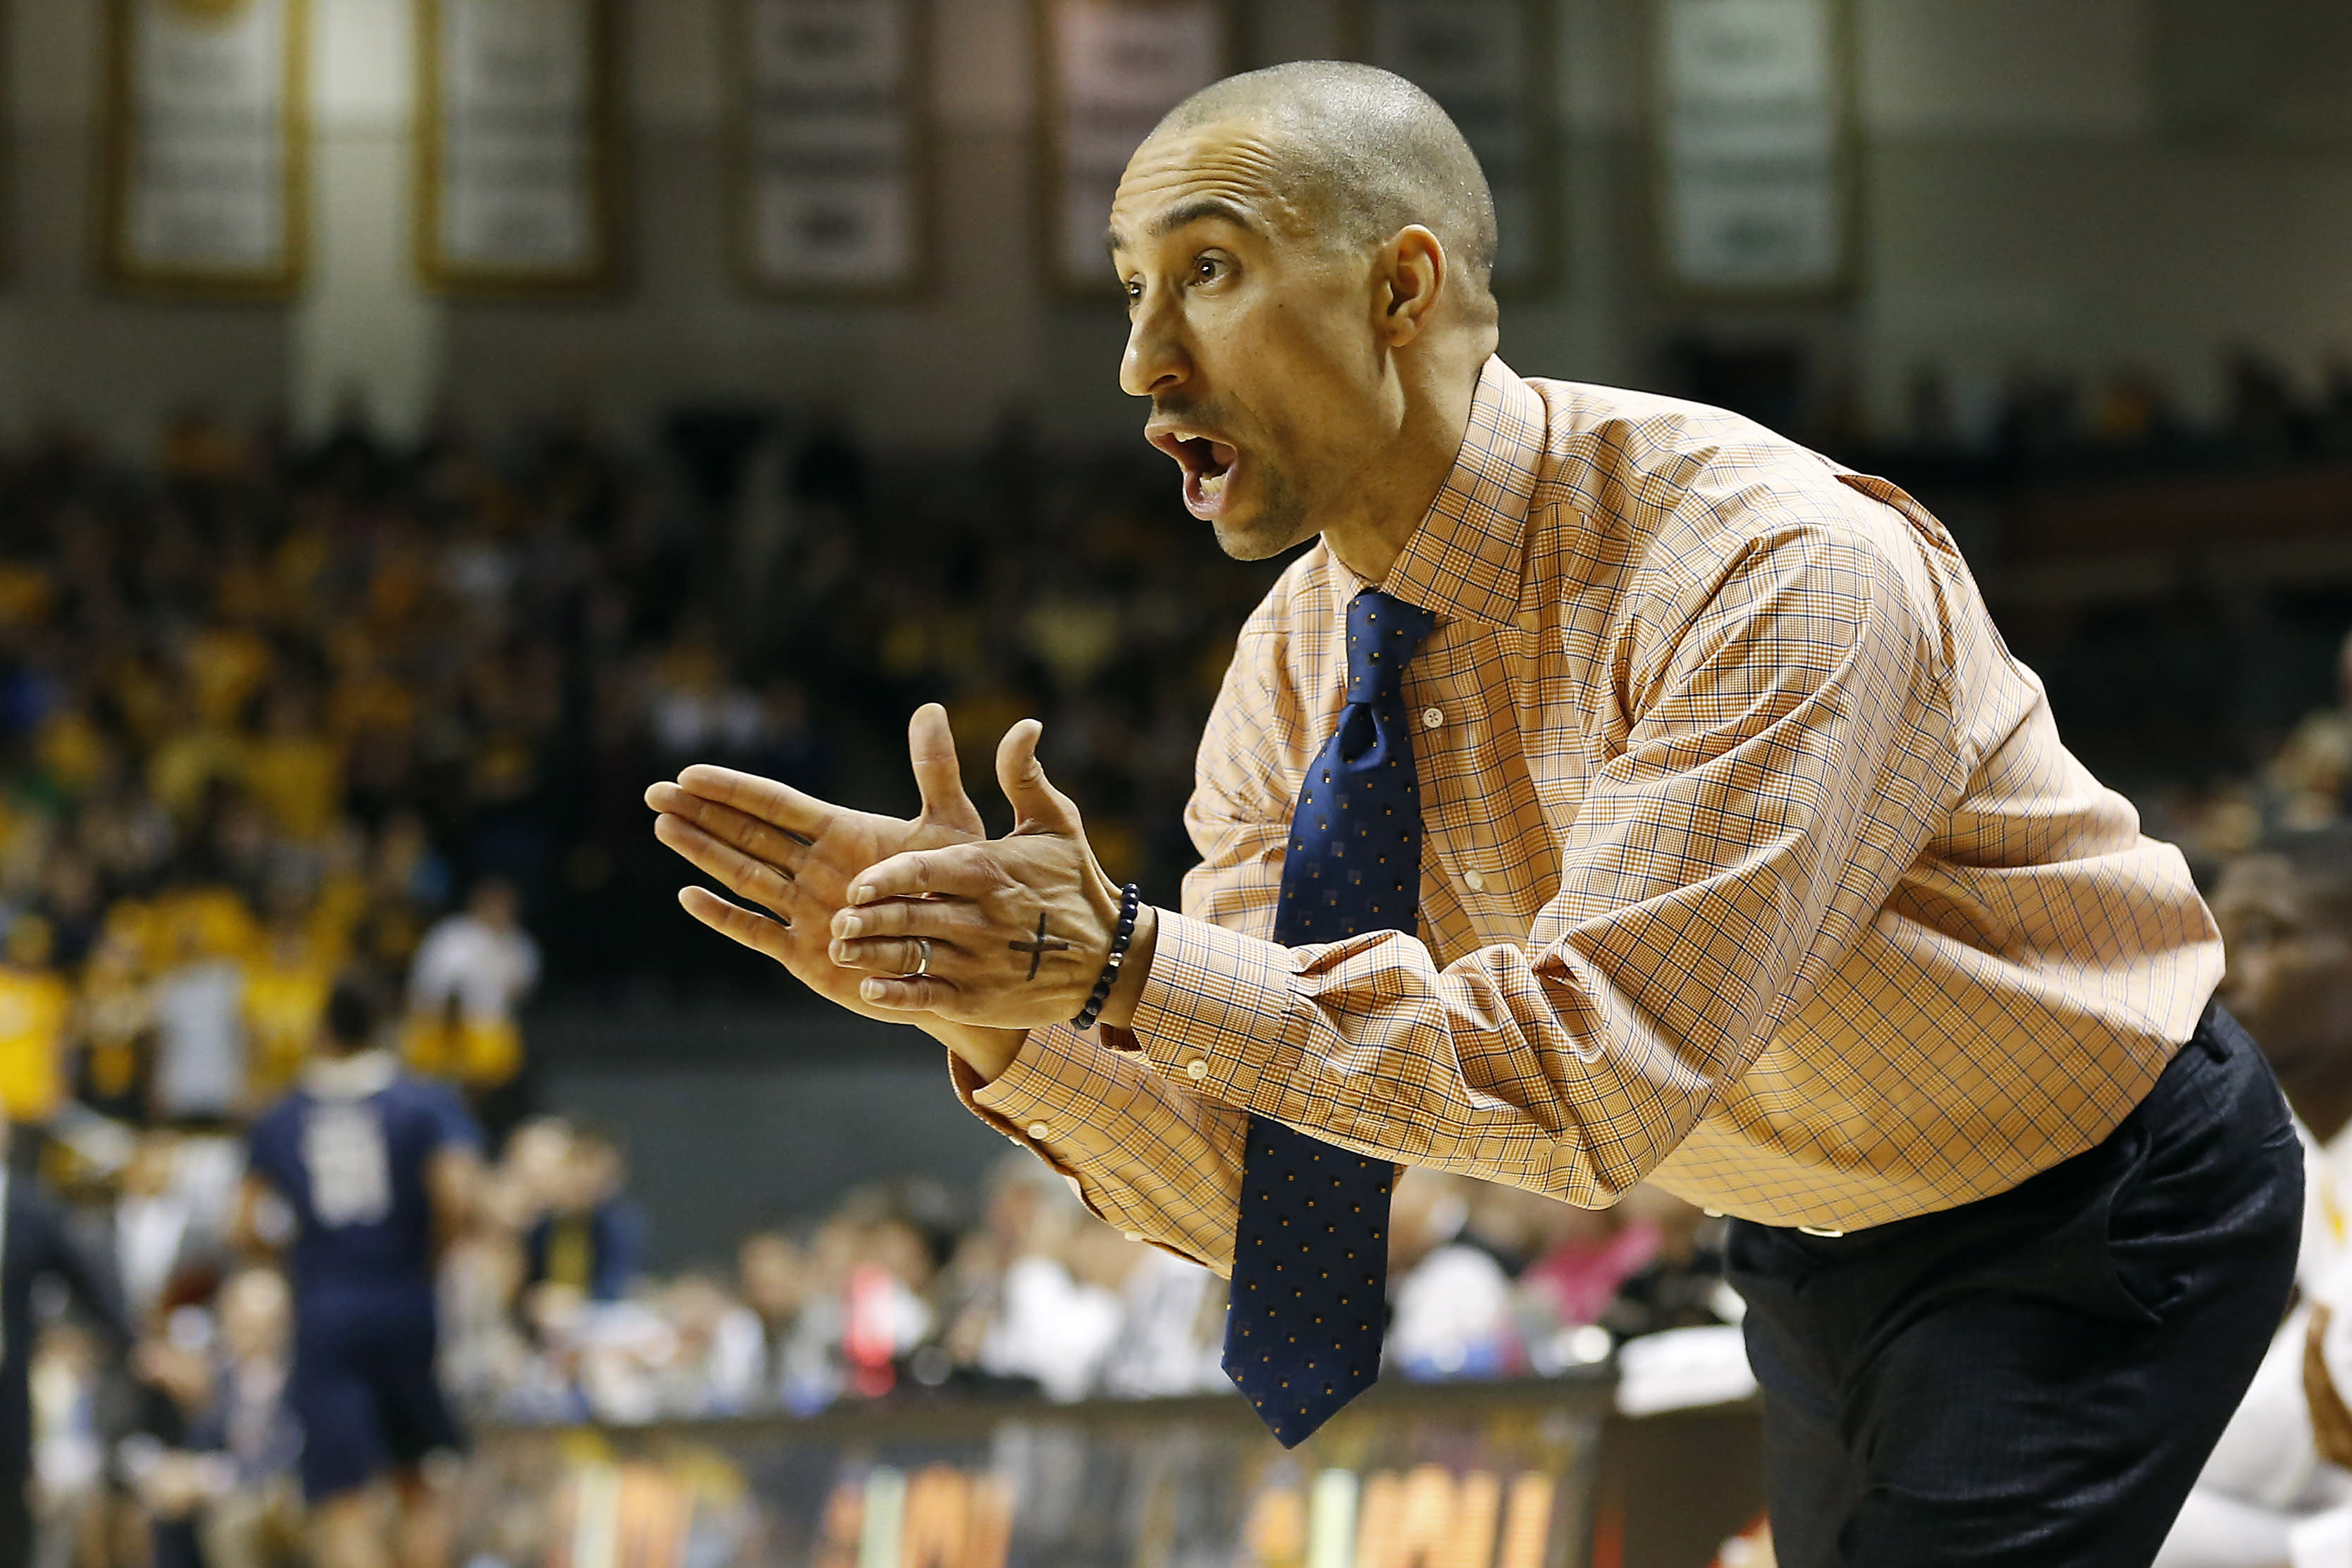 VCU routs George Washington to cement itself as A-10 favorite